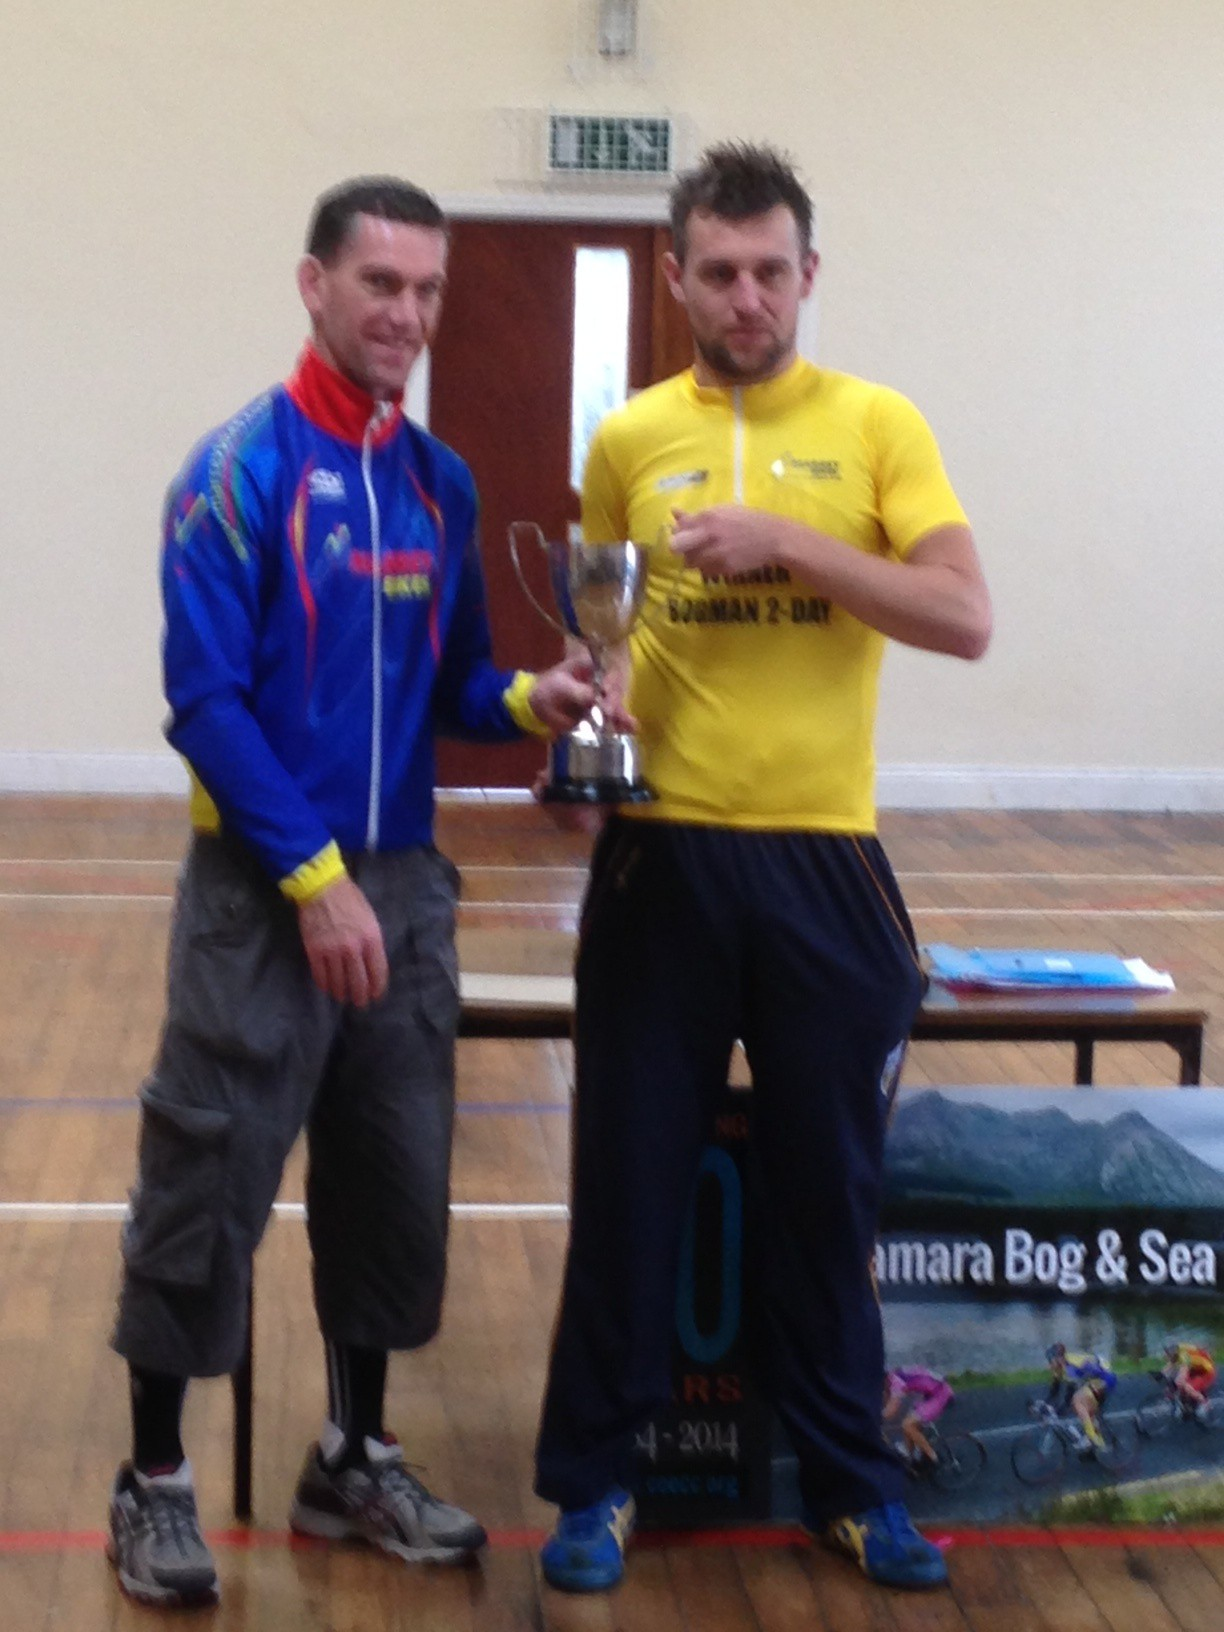 Colm Cassidy Overall winner